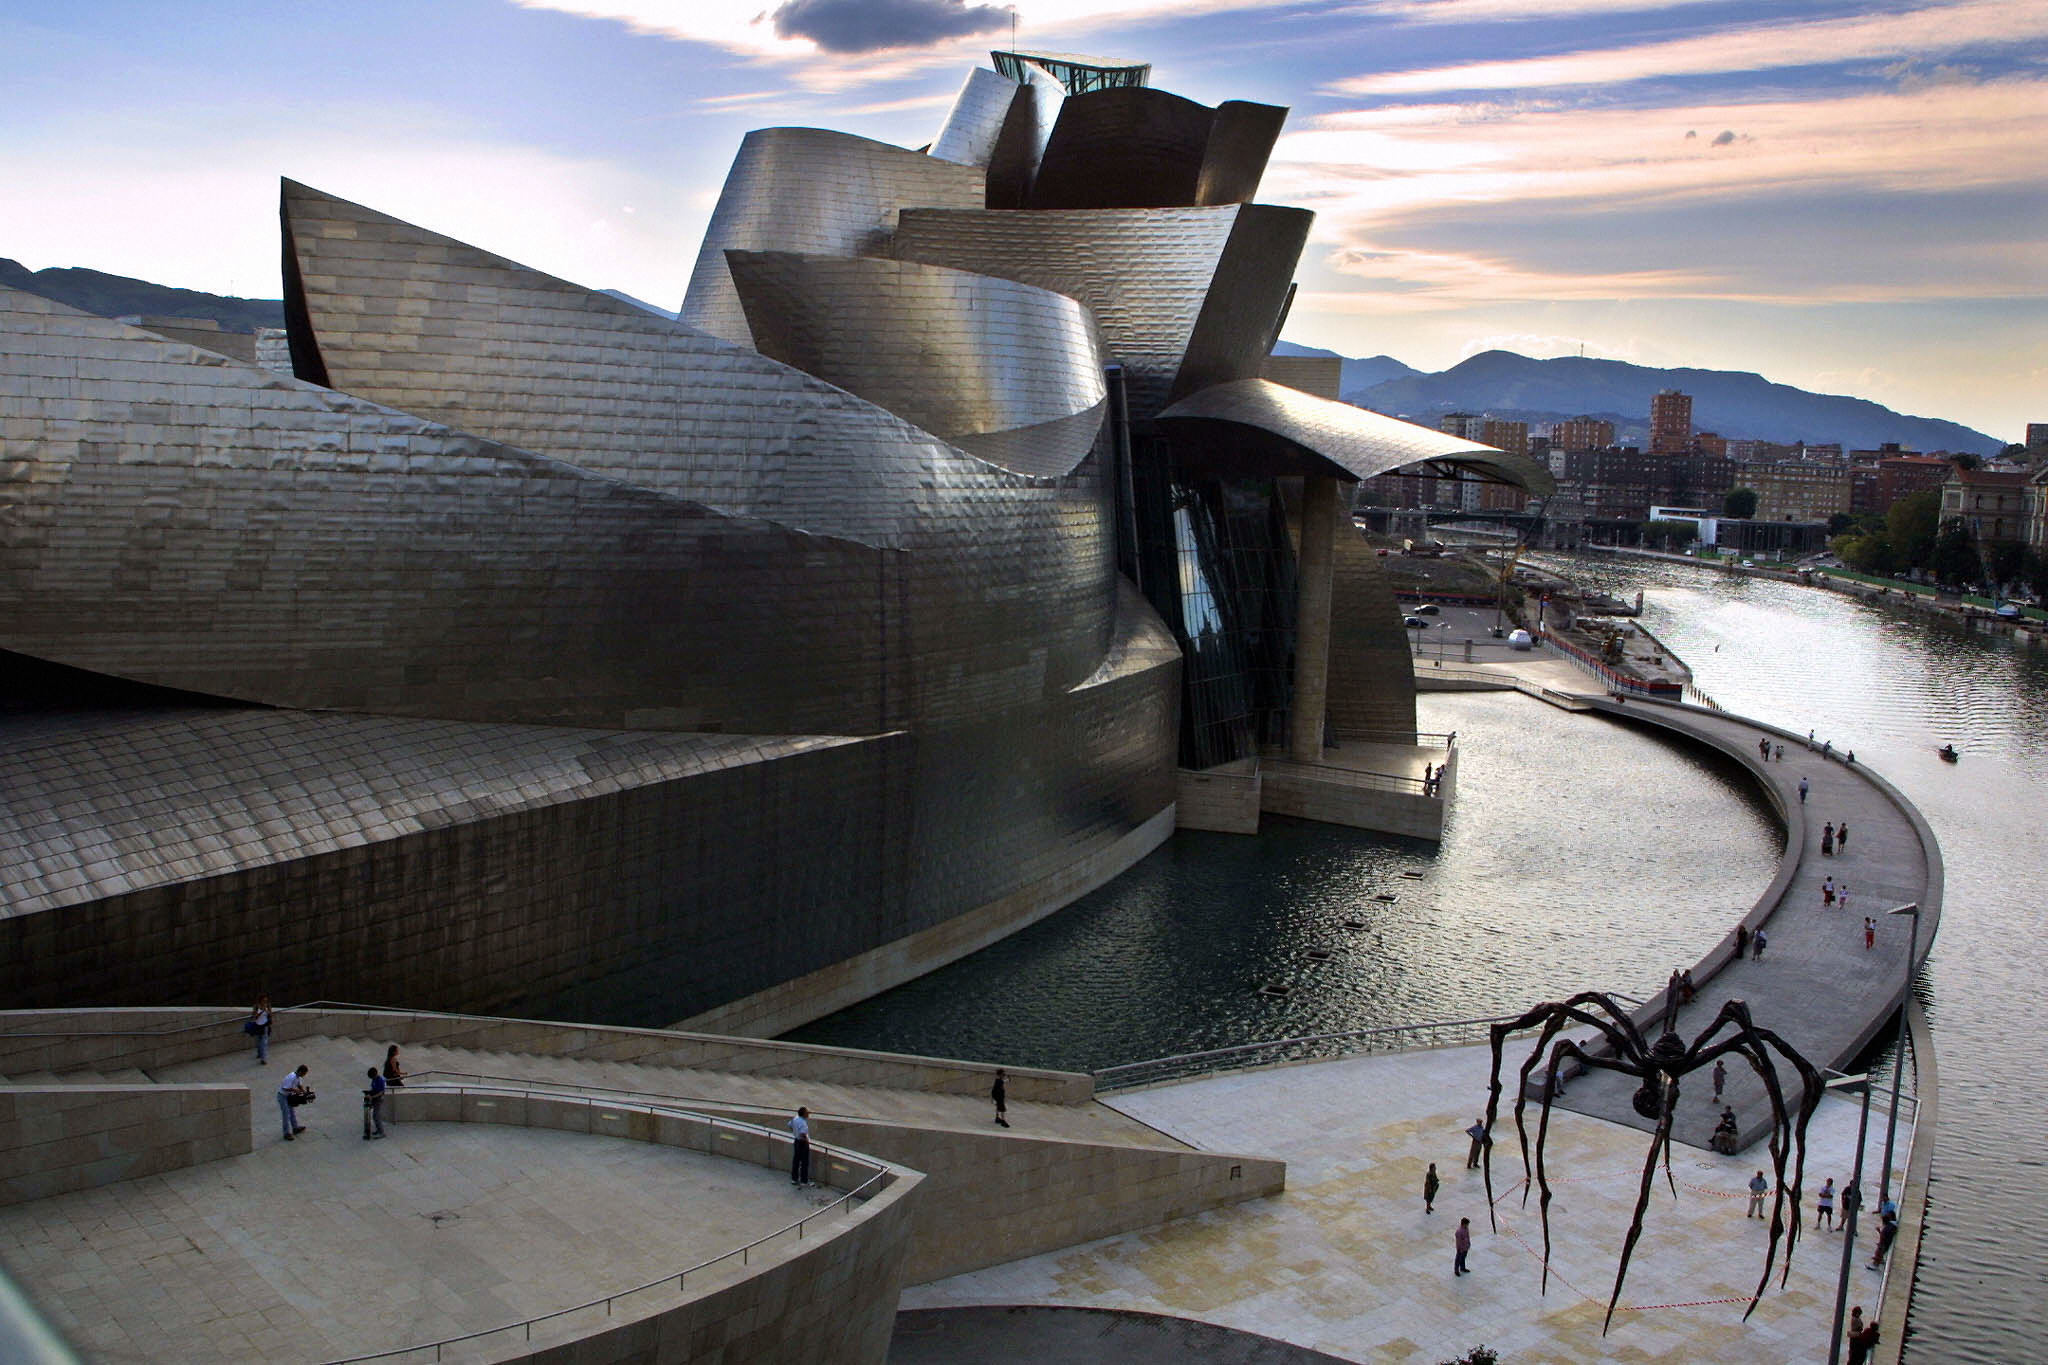 The Guggenheim Bilbao, with a spider by sculptor Louise Bourgeois.